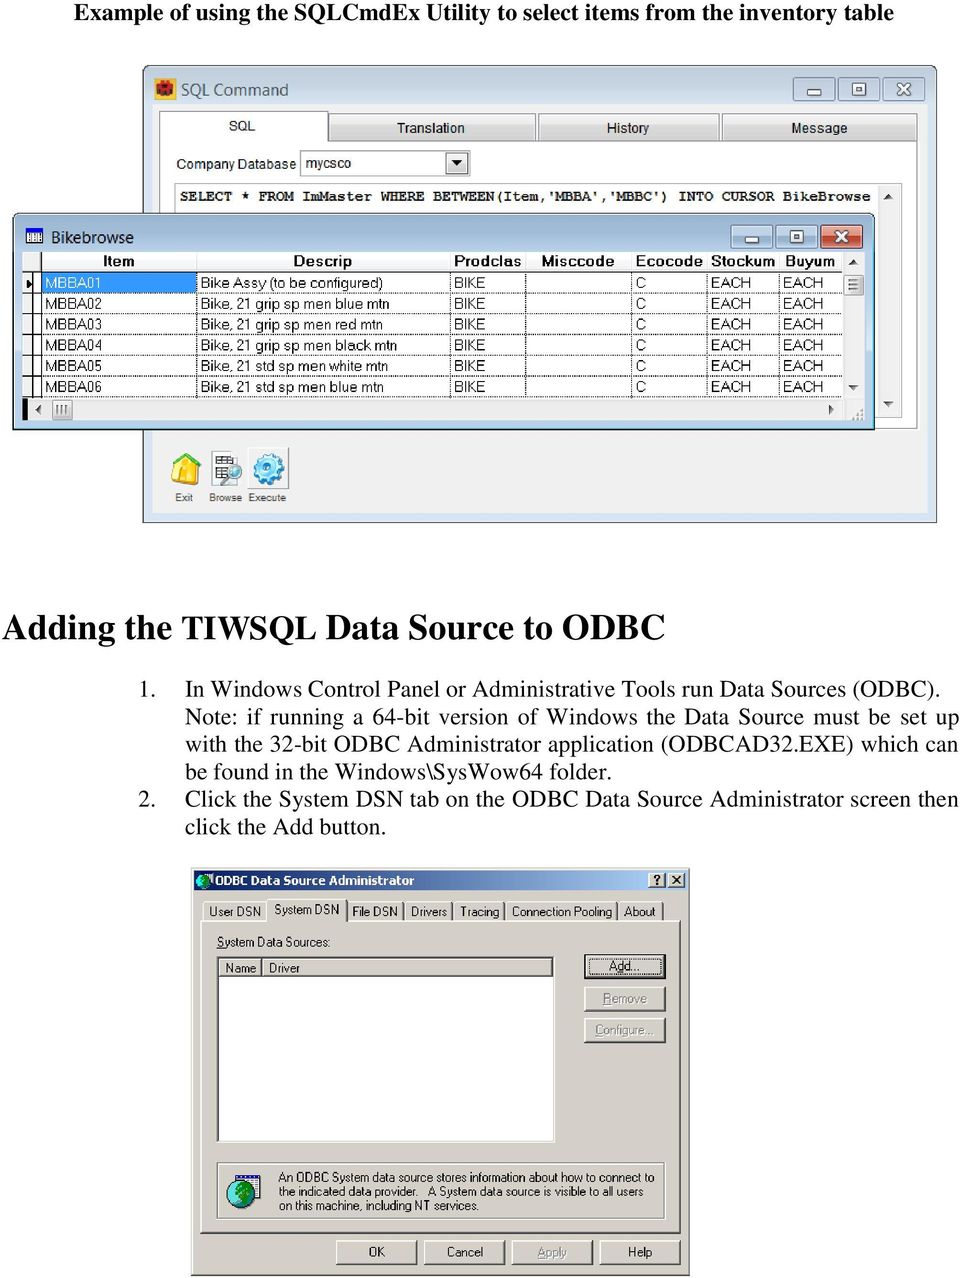 Note: if running a 64-bit version of Windows the Data Source must be set up with the 32-bit ODBC Administrator